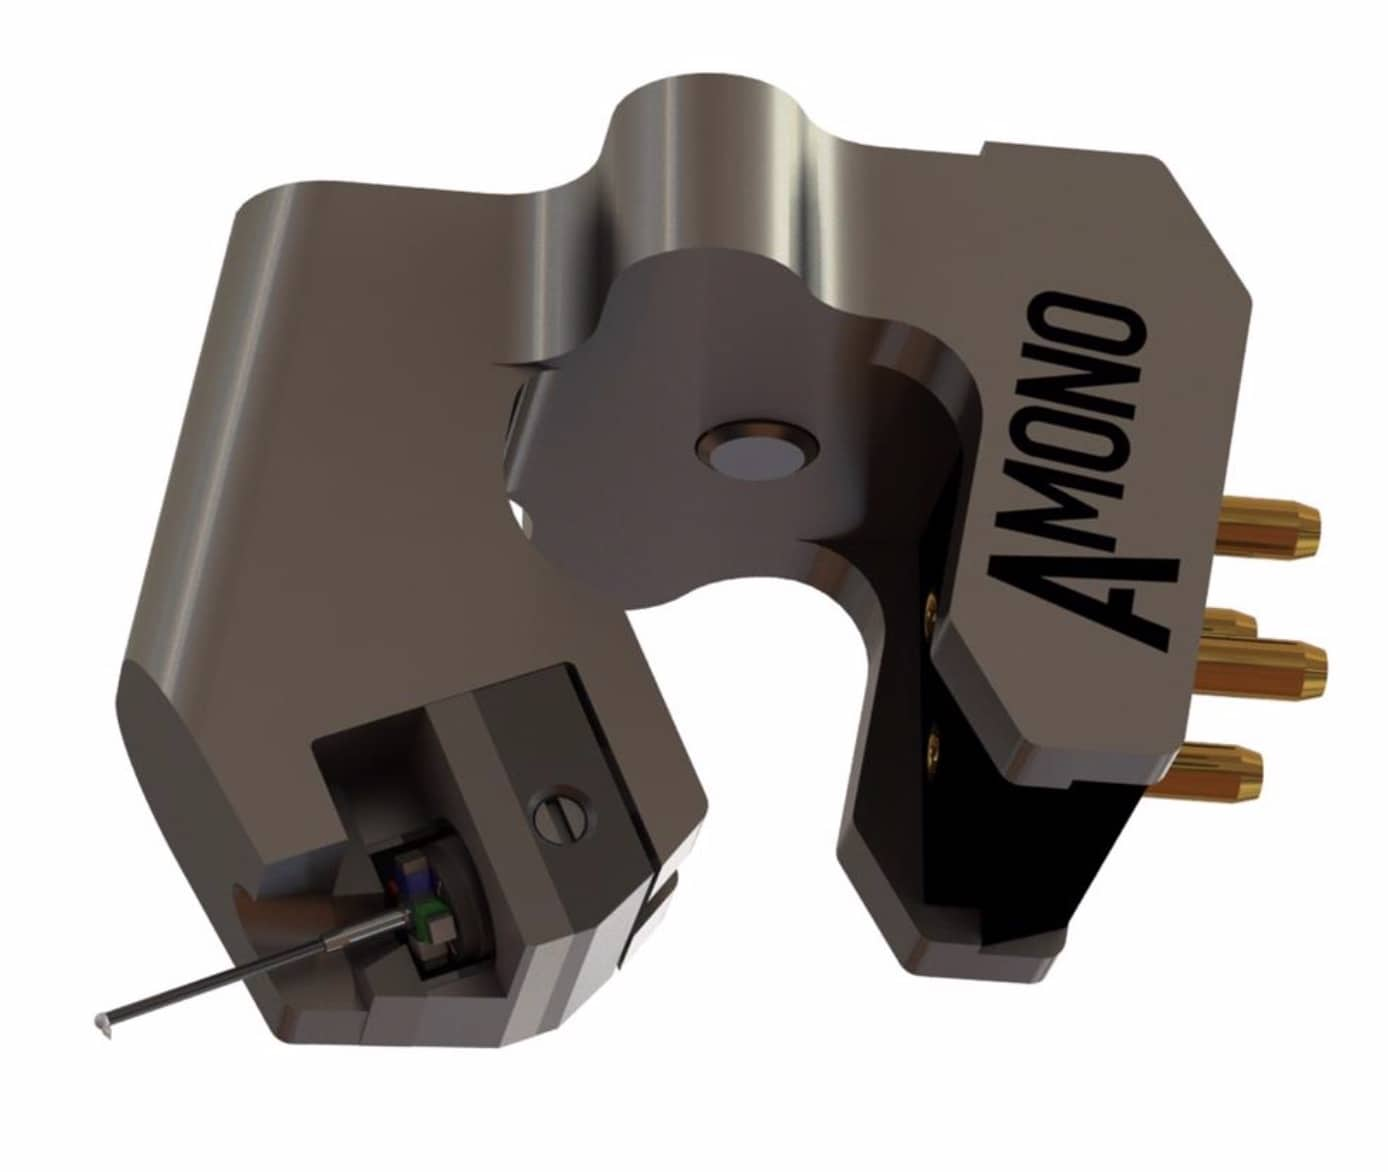 MC A Mono cartridge from Ortofon